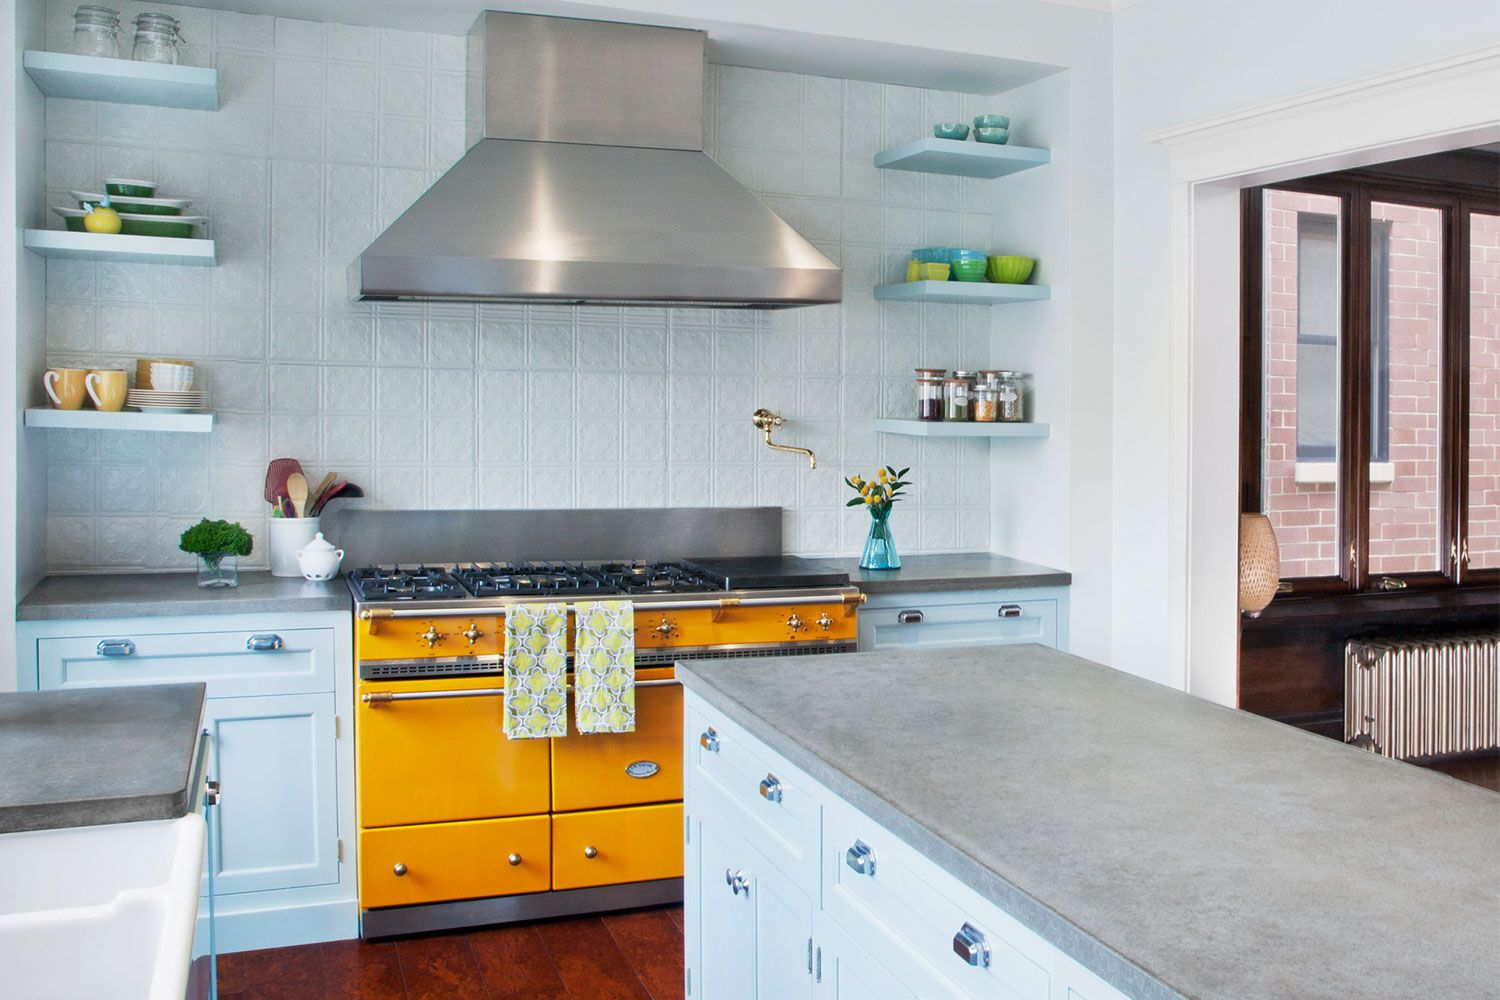 21 Yellow Kitchen Ideas Decorating Tips For Yellow Colored Kitchens